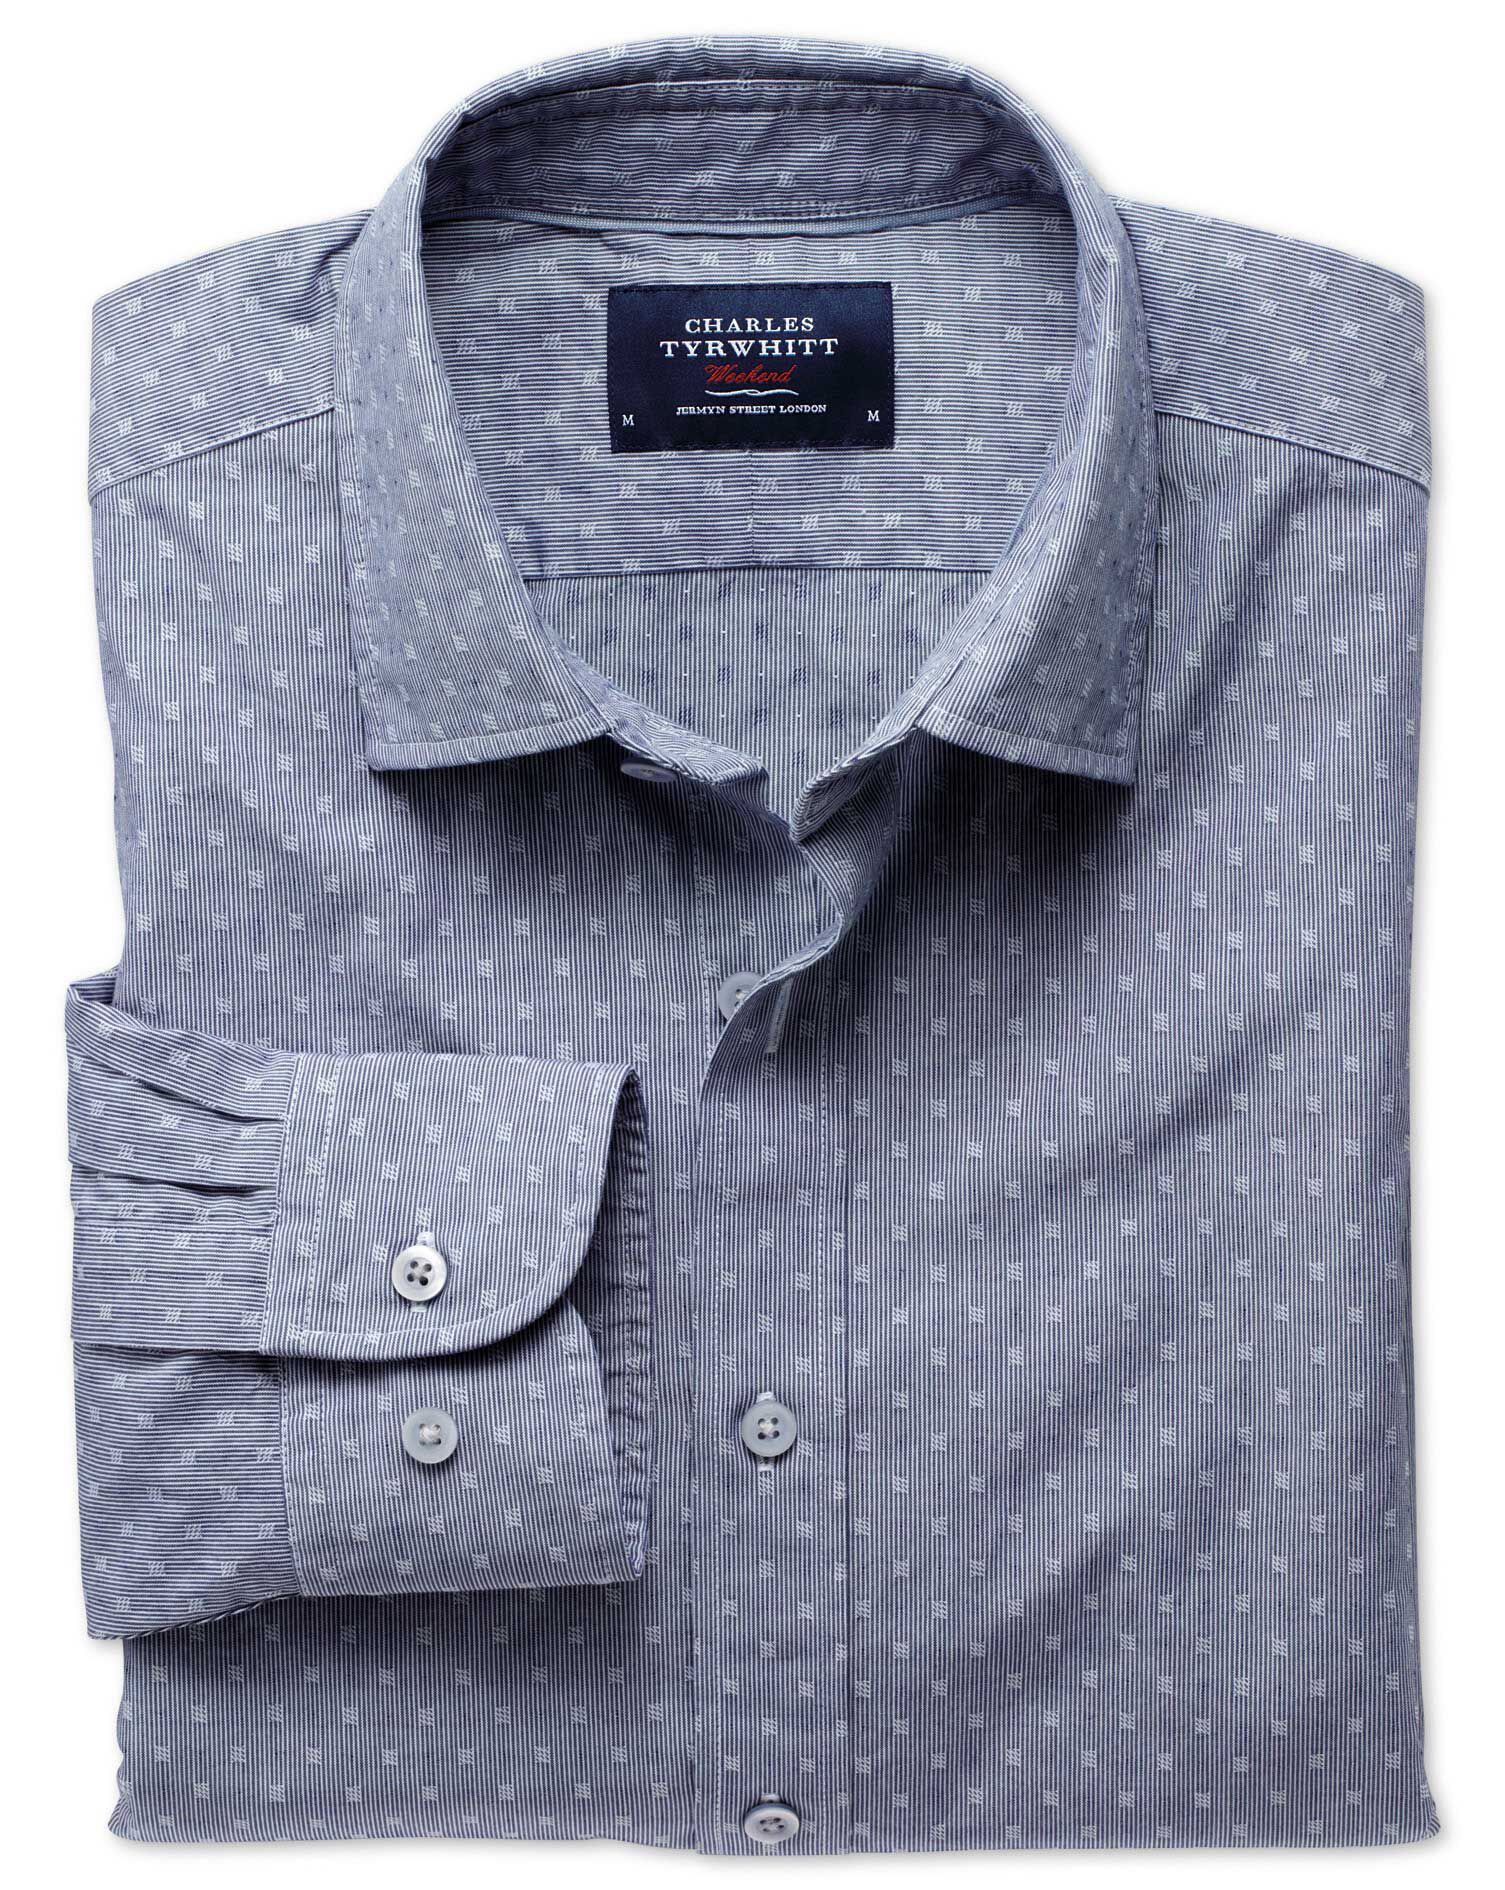 Charles Tyrwhitt Classic Fit Navy Poplin Dobby Cotton Formal Shirt Size XL